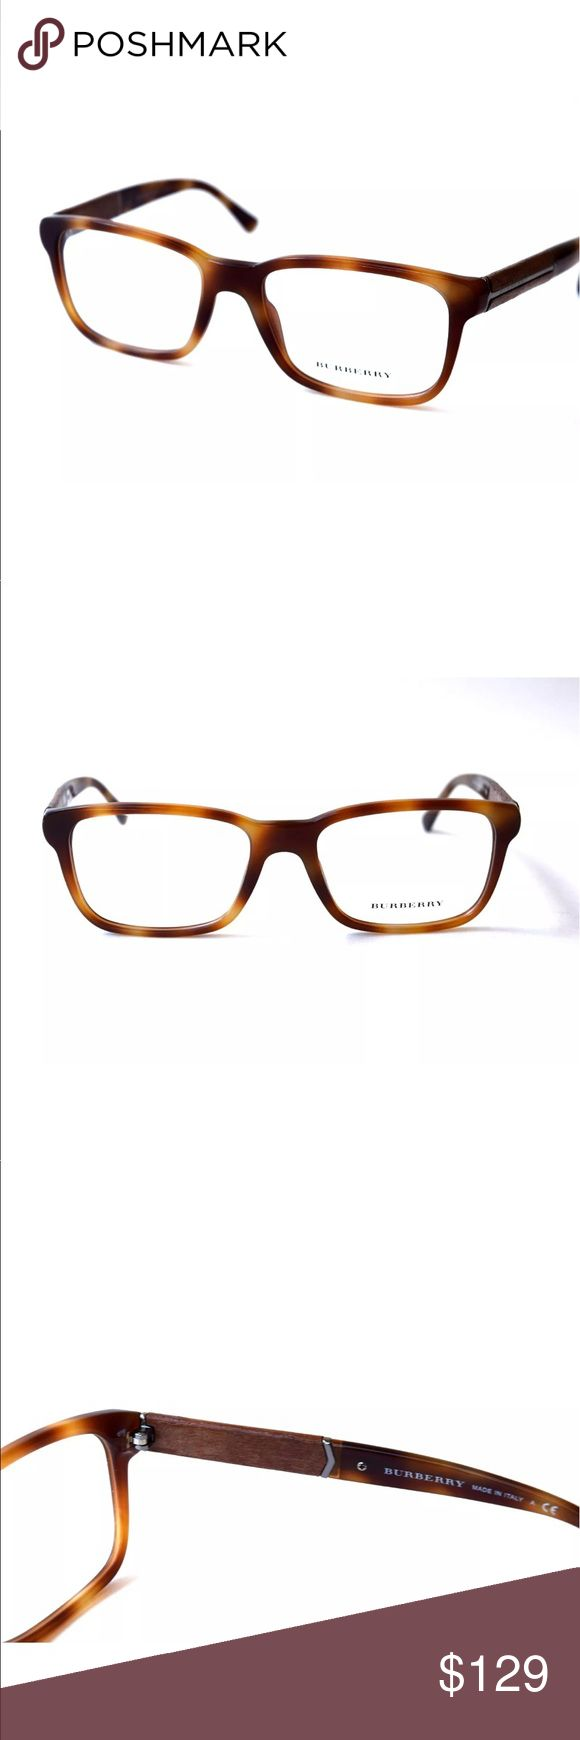 BURBERRY Eyeglasses Brown Horn Wooden accents Brown Horn Wooden accents Burberry Eyeglasses  Burberry Eyeglasses for Prescription lenses  SIZE: 55mm - 18mm - 140mm  🦋100% Authentic!!!  🦋Includes a Burberry Case. No Tags Burberry Accessories Glasses